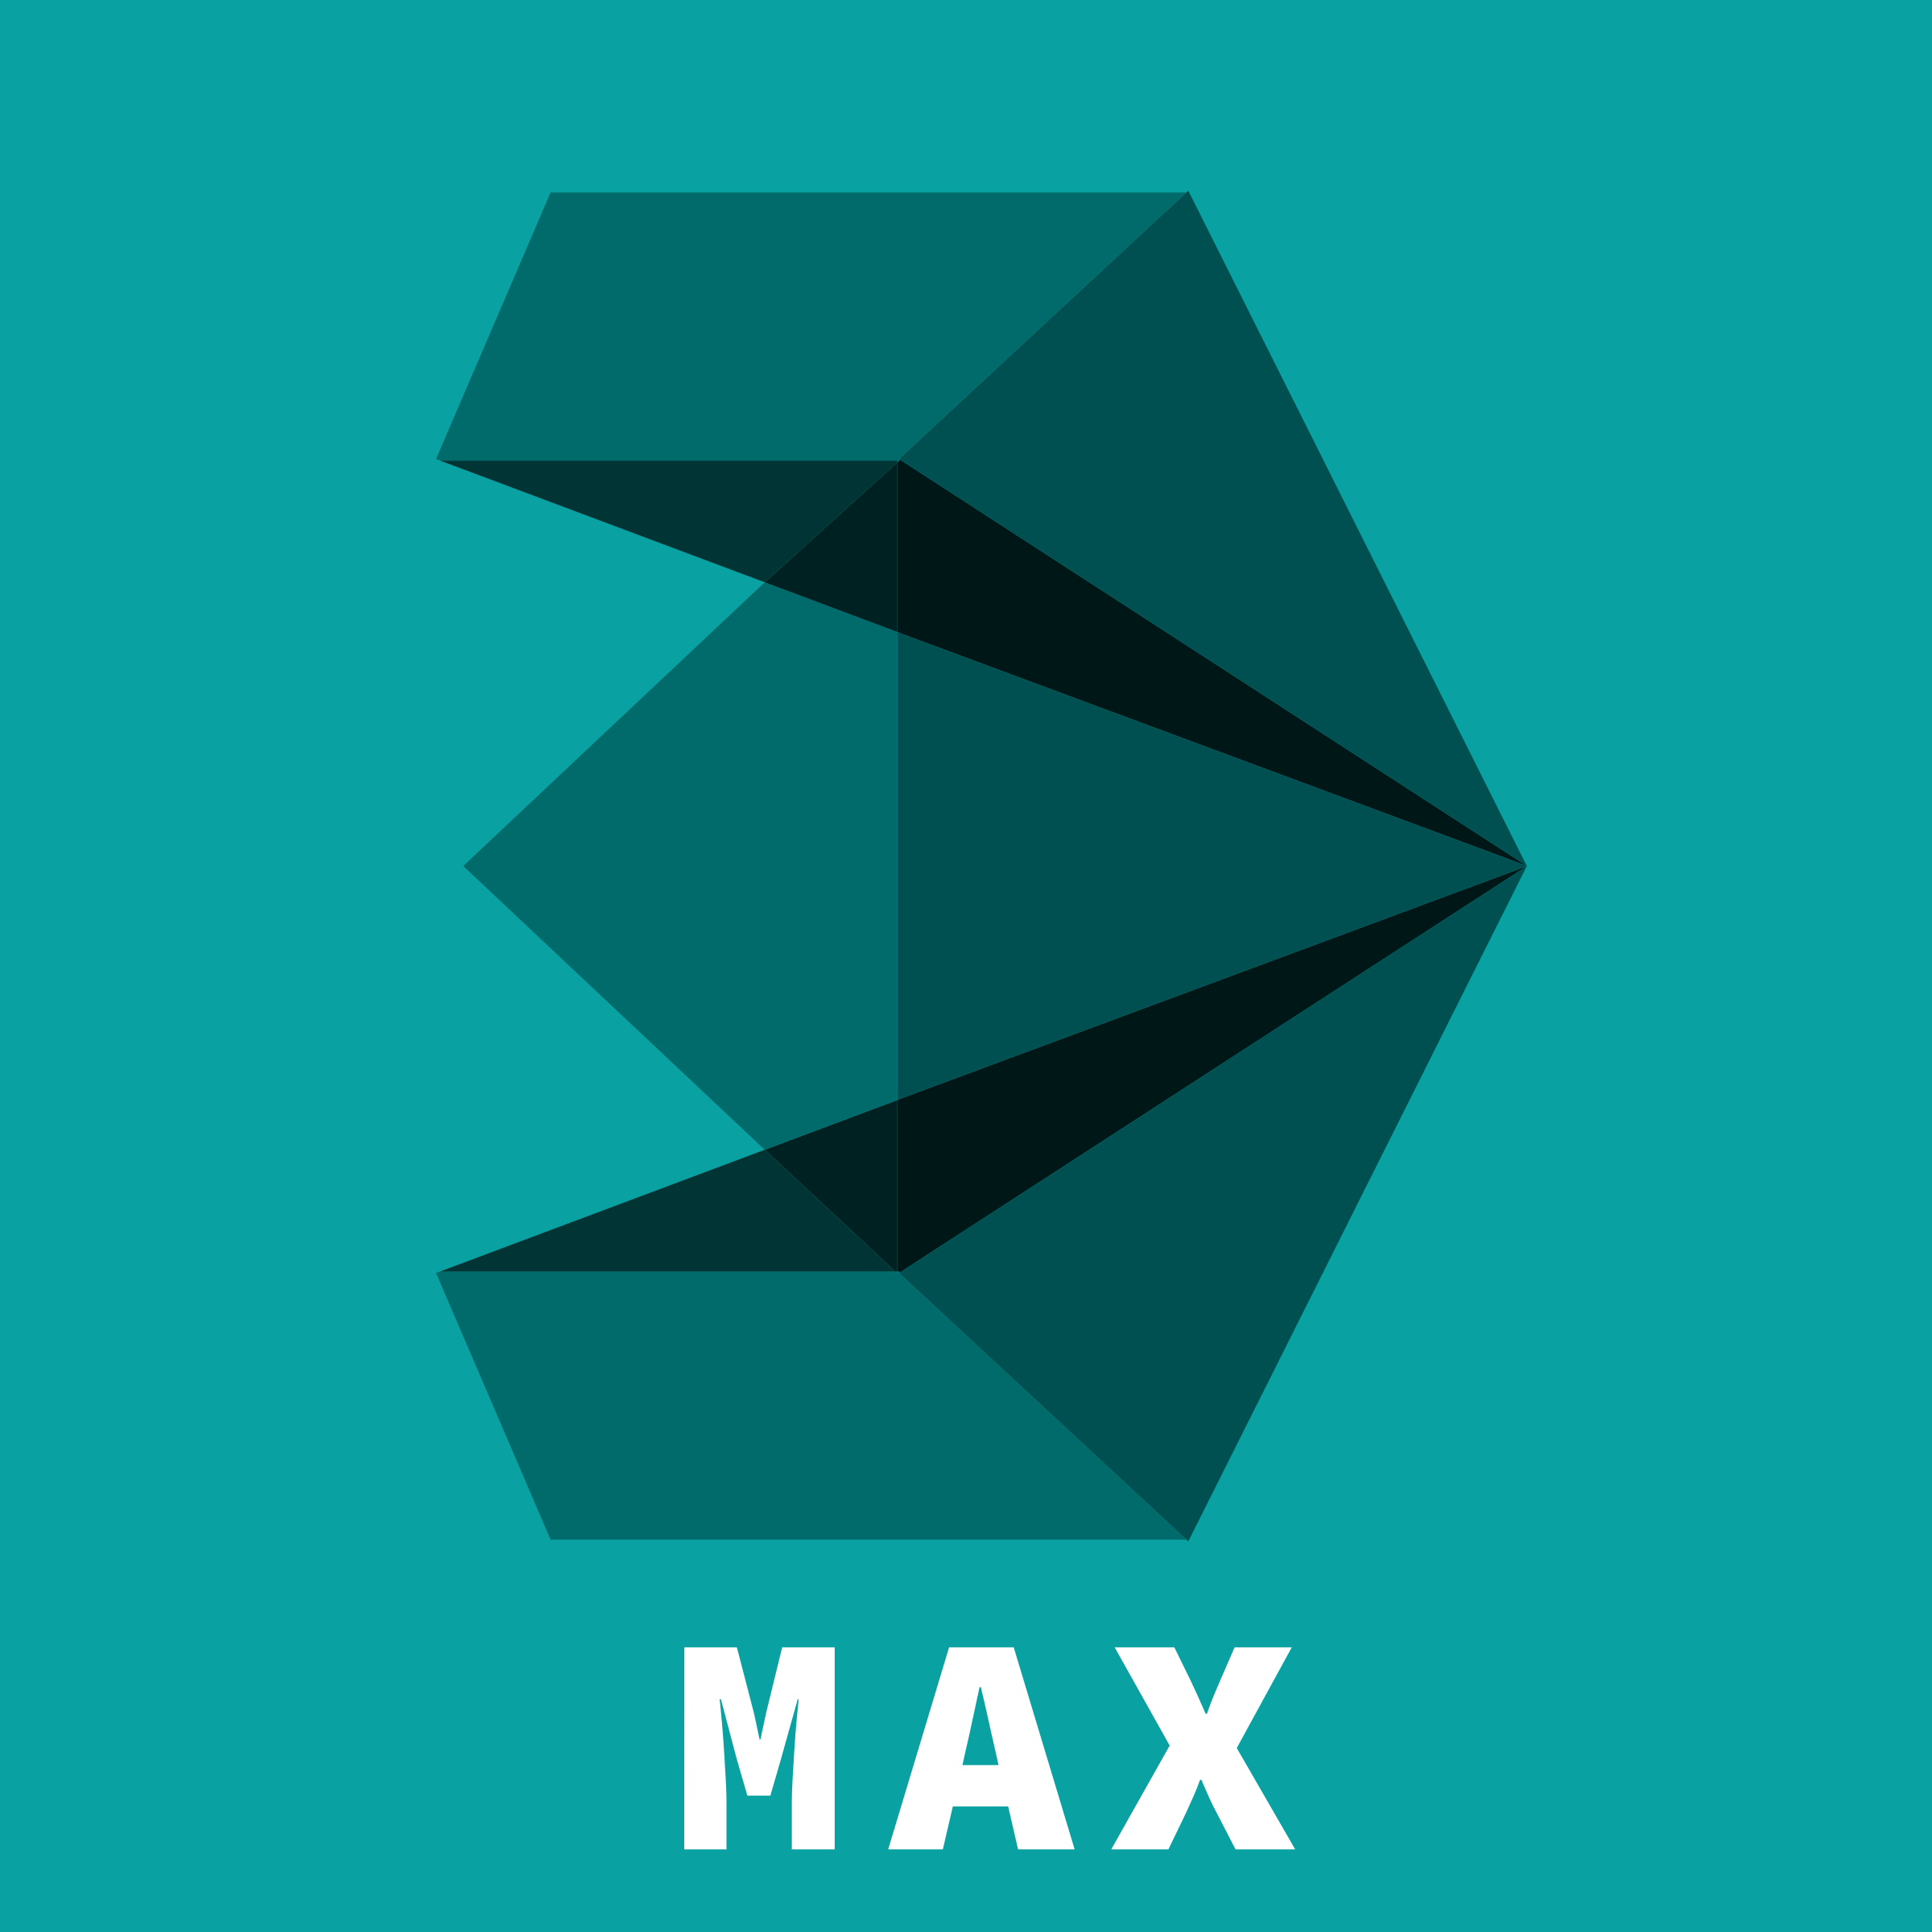 3ds max full logo png transparent amp svg vector freebie